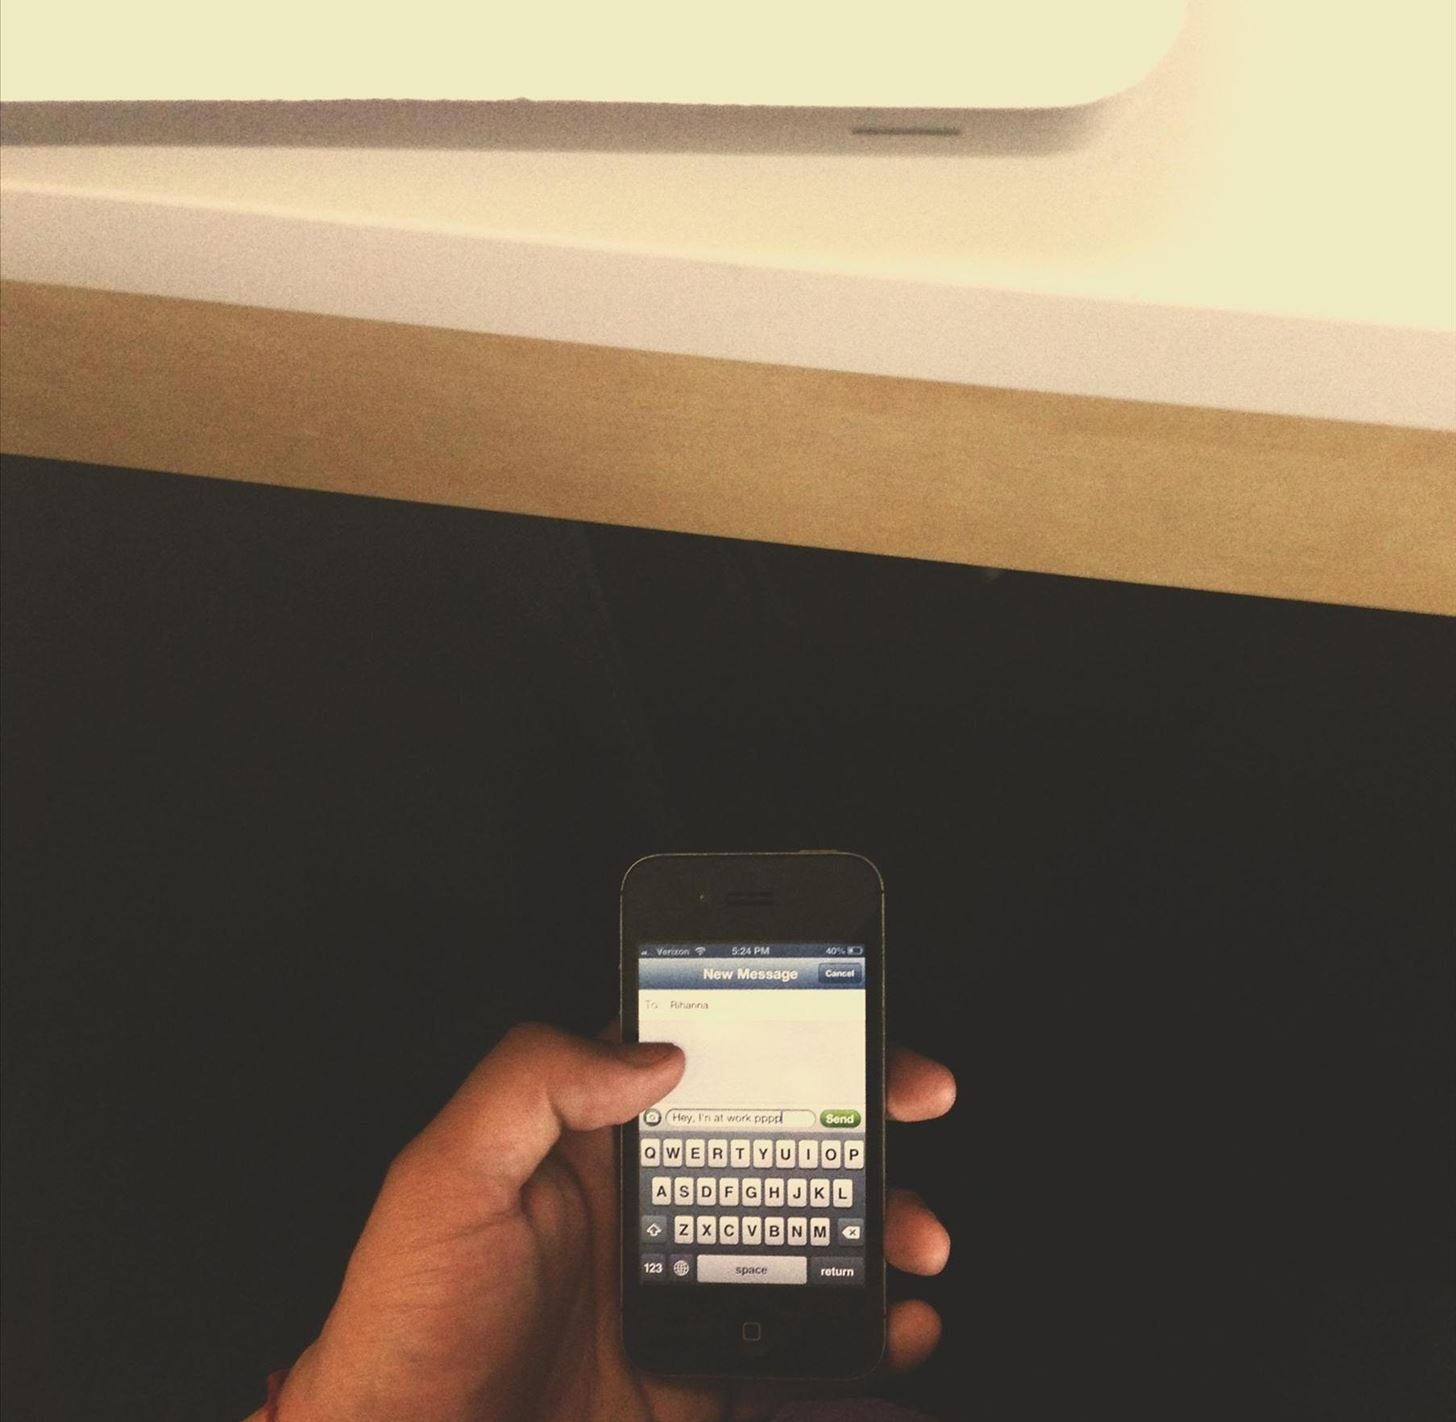 How to Secretly Send Text Messages in Class or at Work Without Touching Your iPhone